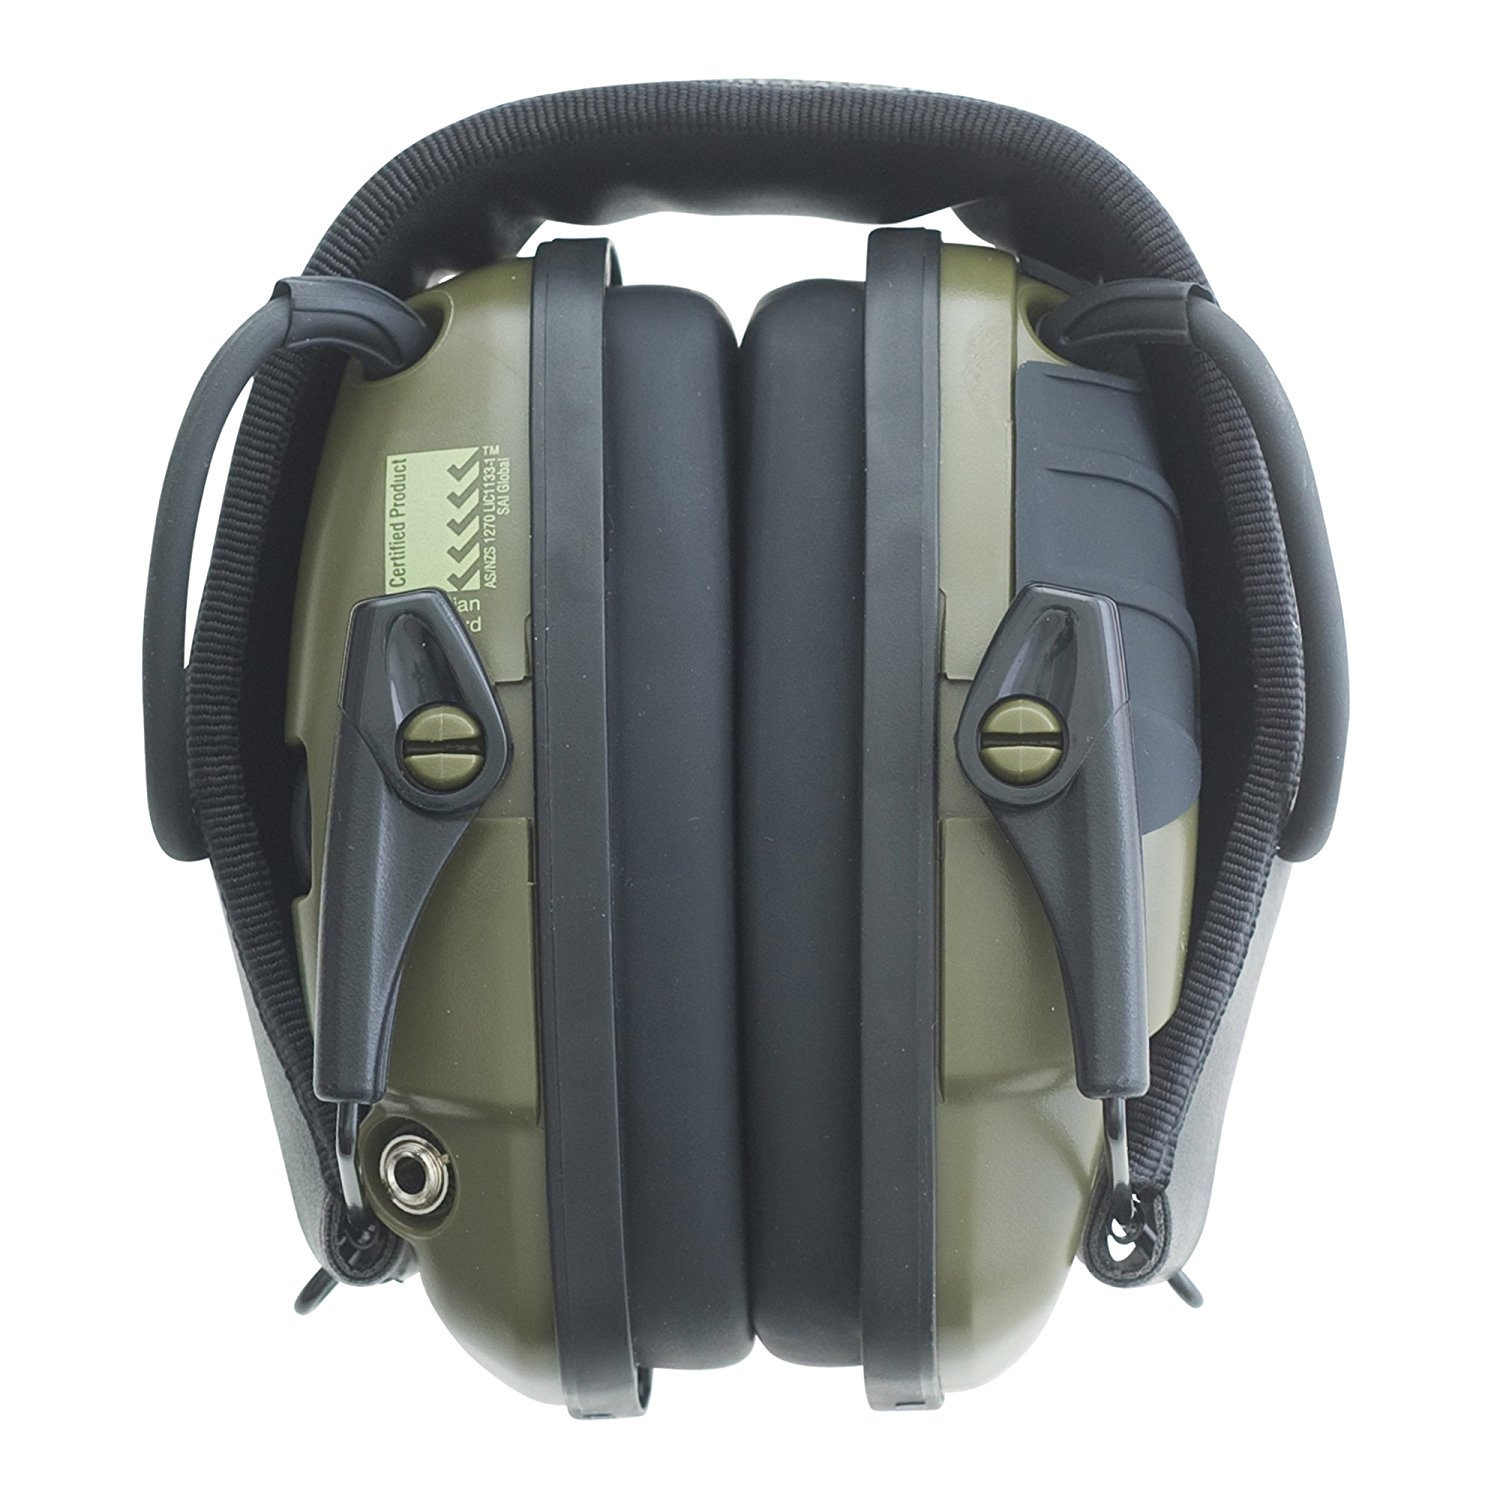 Howard Leight Impact Sport Electric Earmuff – Available in 6 colors & 4 Quantity Options